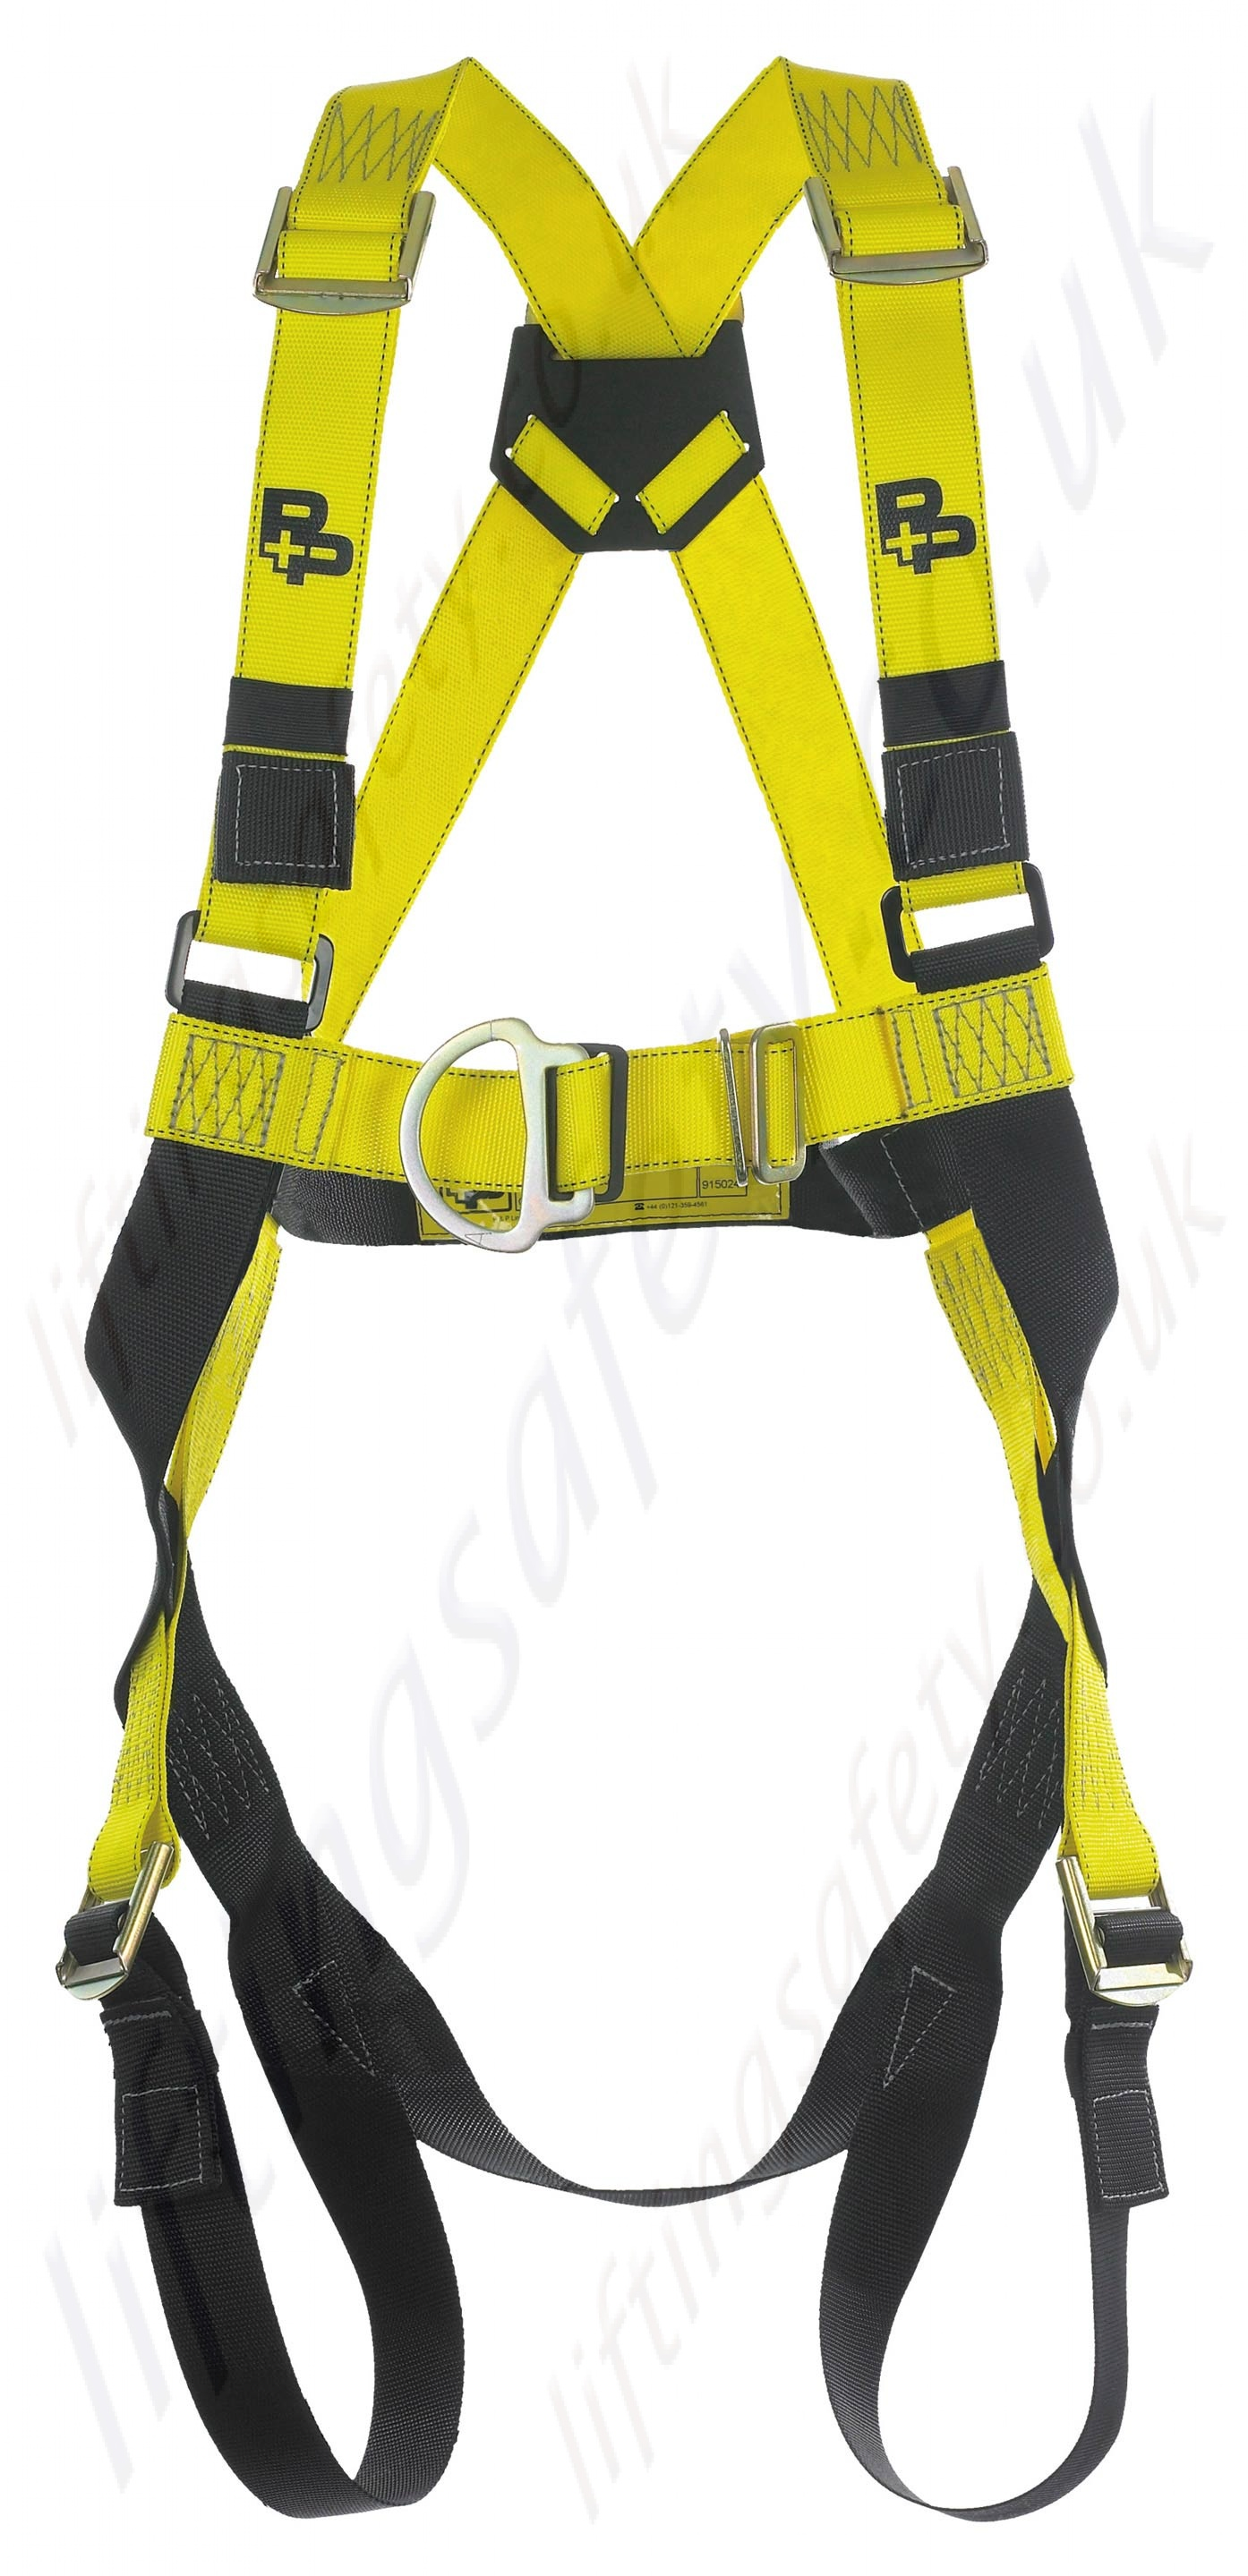 P P Safety Quick Fit Two Point Fall Arrest Harness